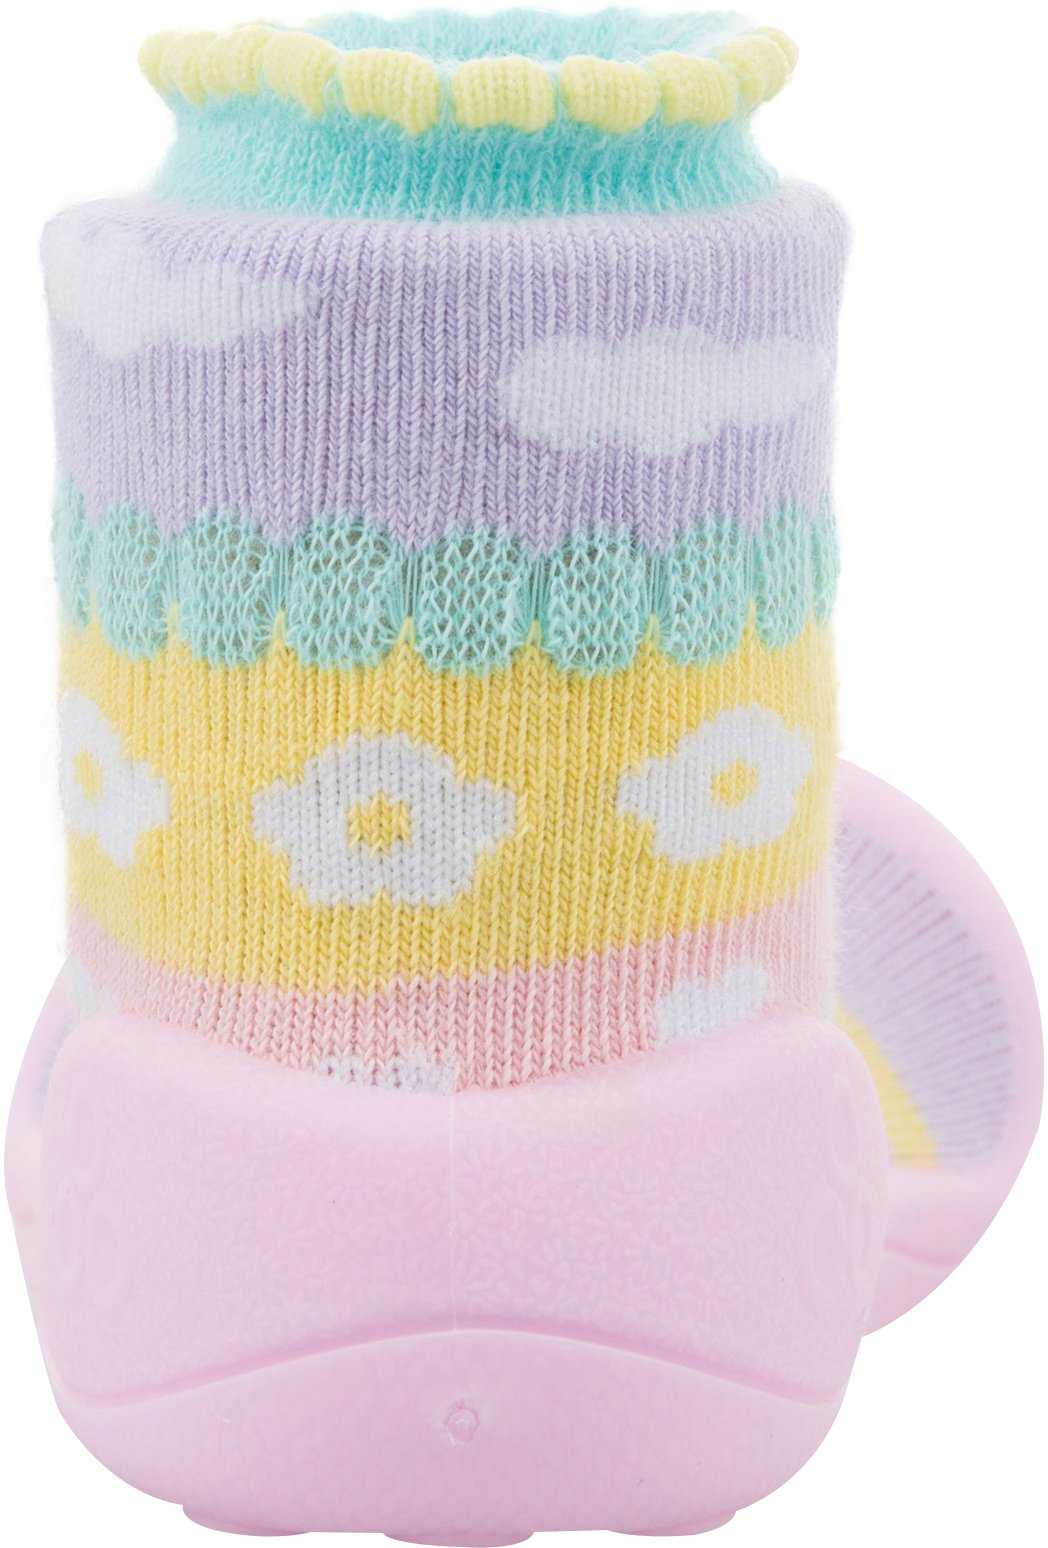 Attipas Baby First Walker Shoes (Large, Attibebe Pink) by Attipas (Image #4)